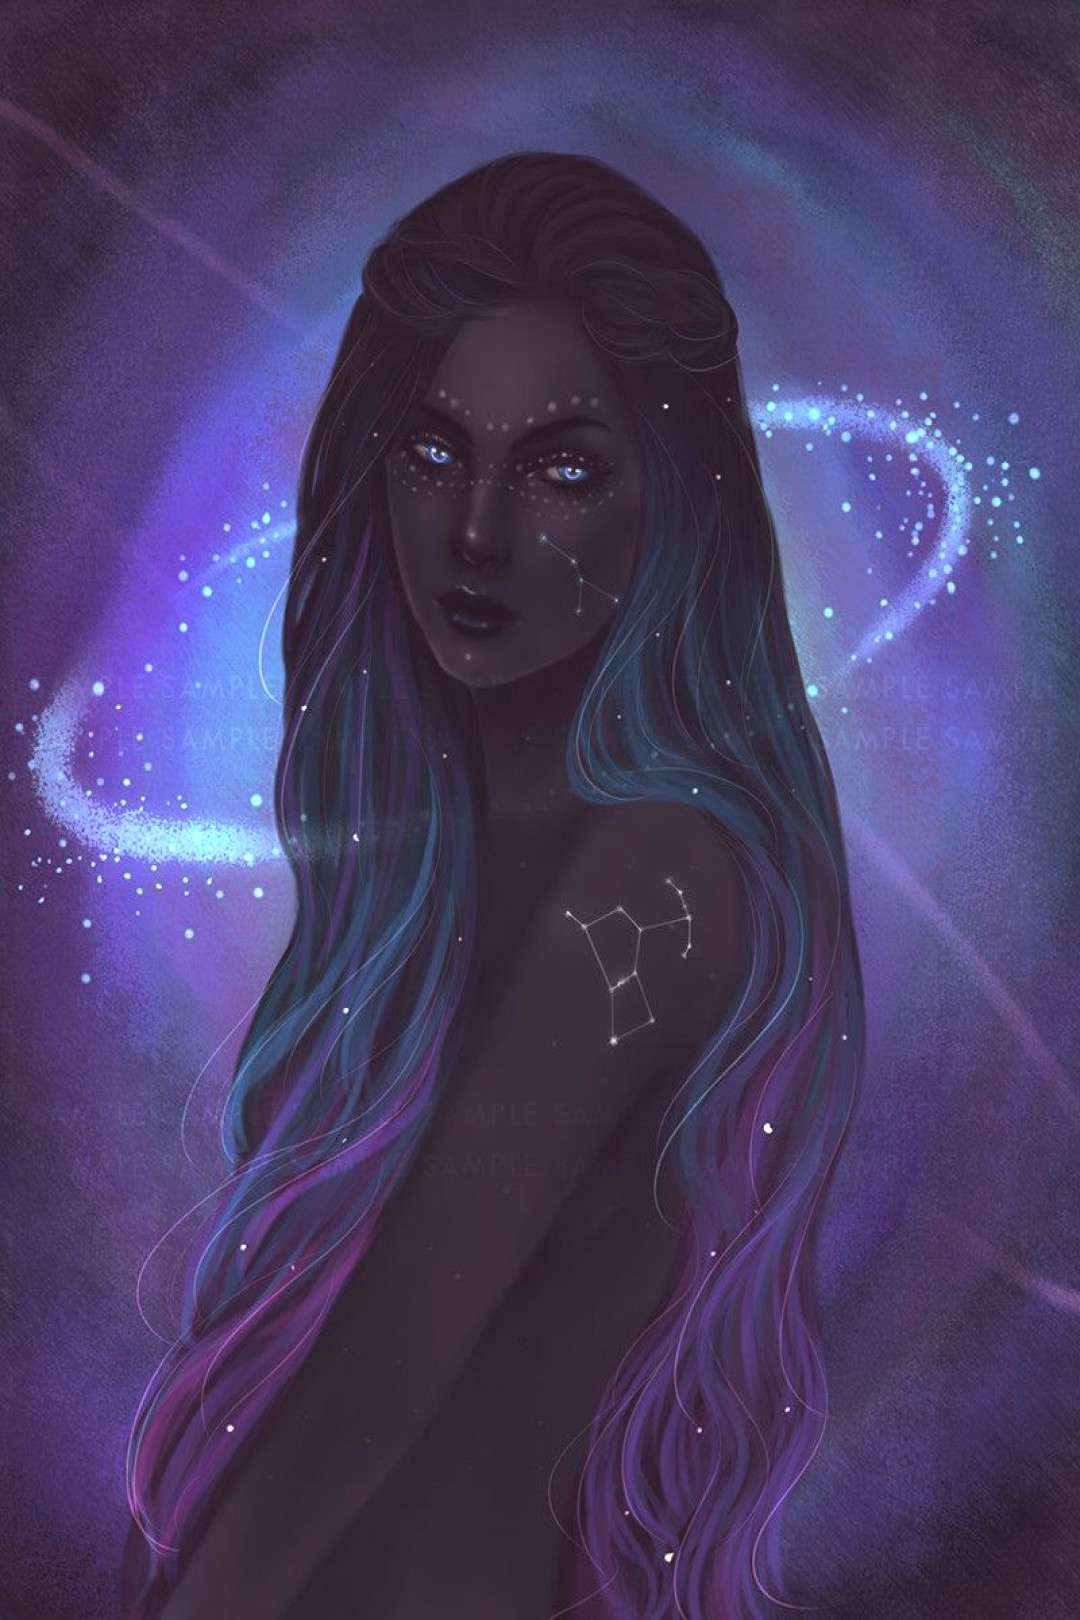 Beings with the constellations of the stars tattooed on their bodies with the brilliance of the moo